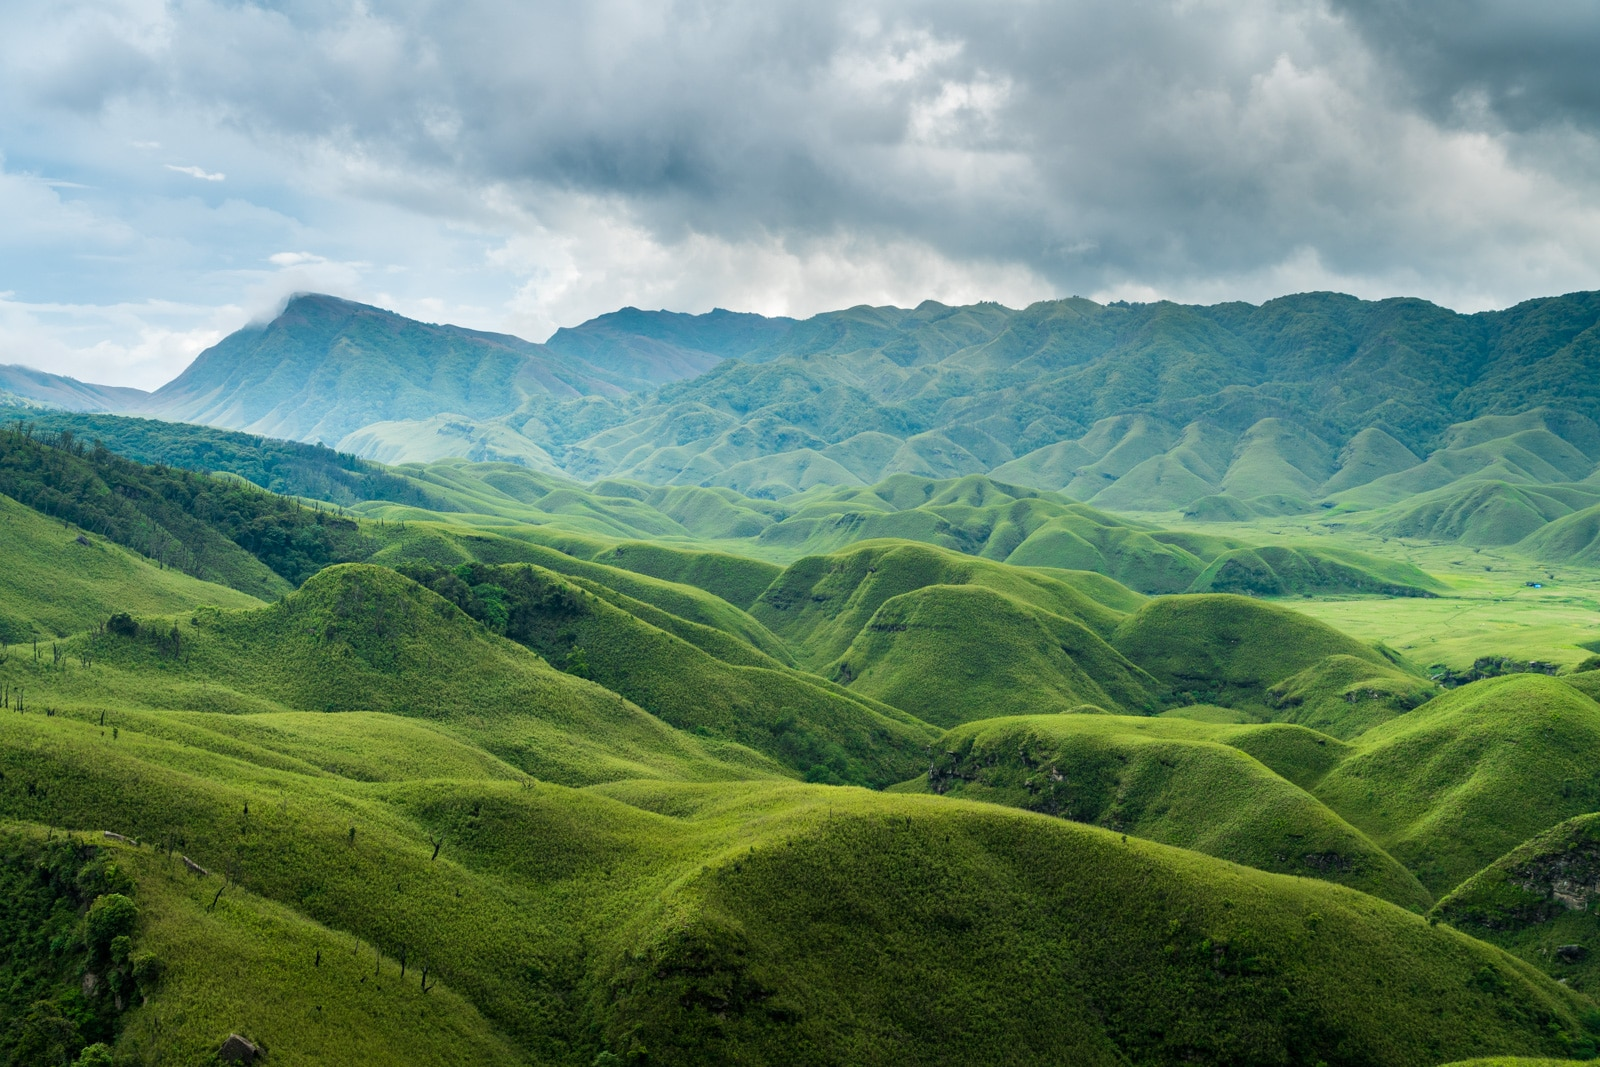 The green carpeted hills of Dzukou Valley